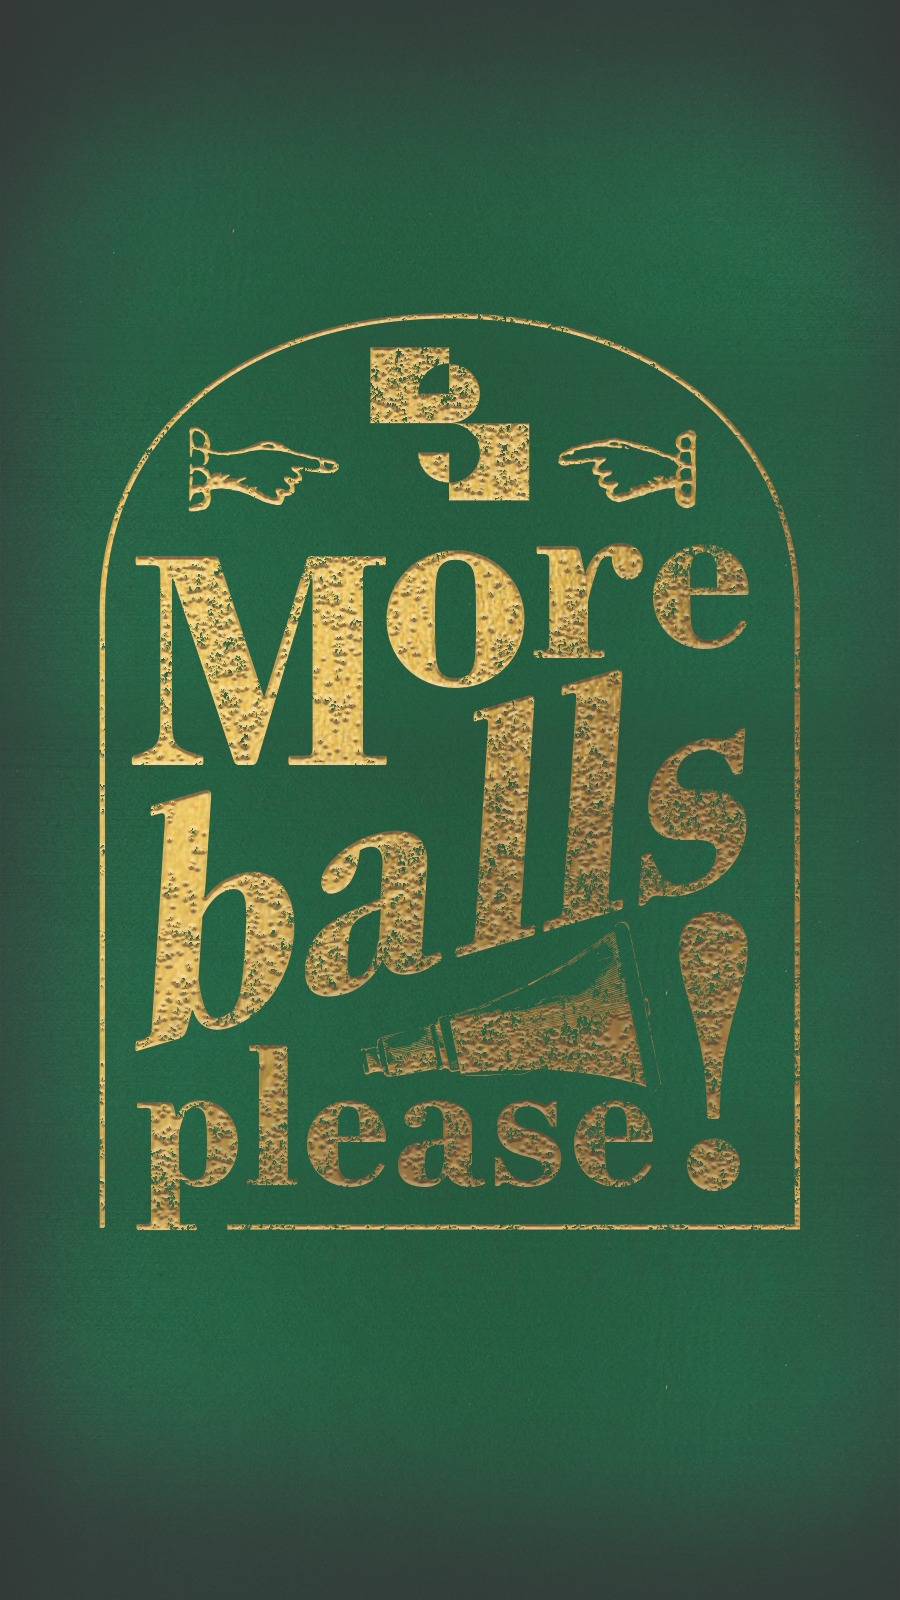 More balls, please!